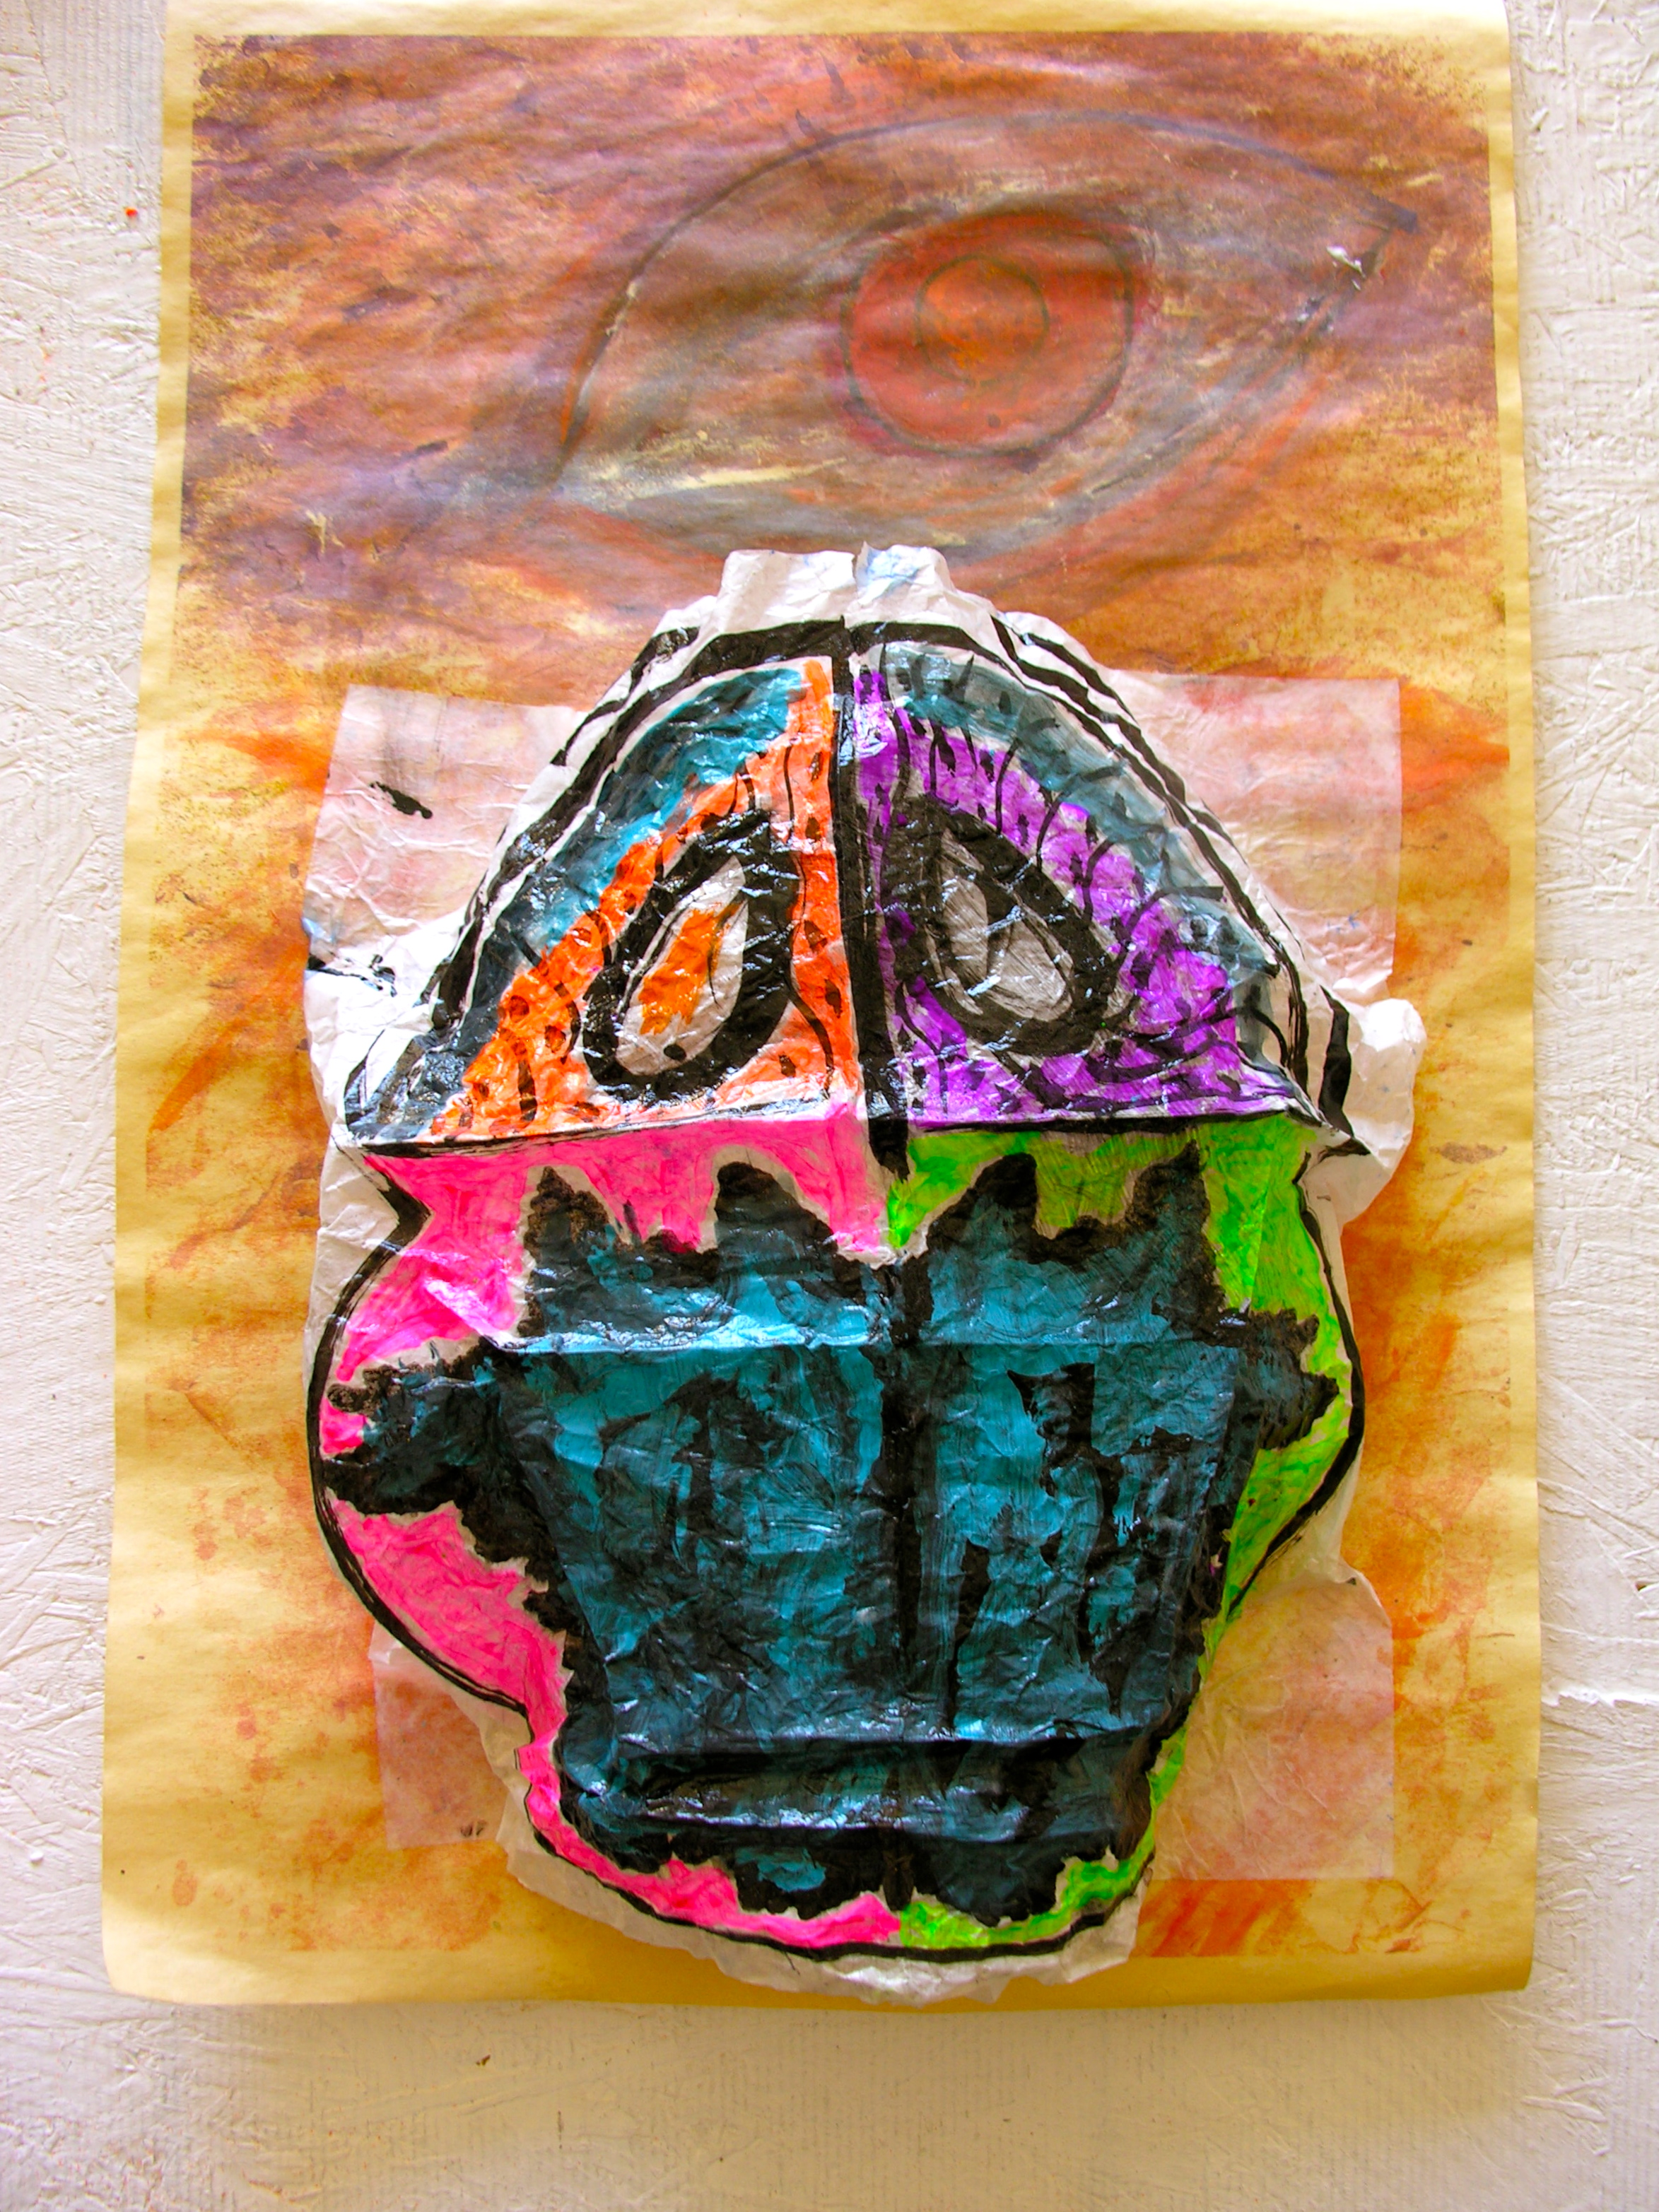 "Scarab beetle rising from, come into being itself,"" Bas relief sculpture Sandwich Wrapping Paper, Painted, Folded and Mounted, Mix Media. 12 x 17 inches Milan Paper, Under Drawing,"